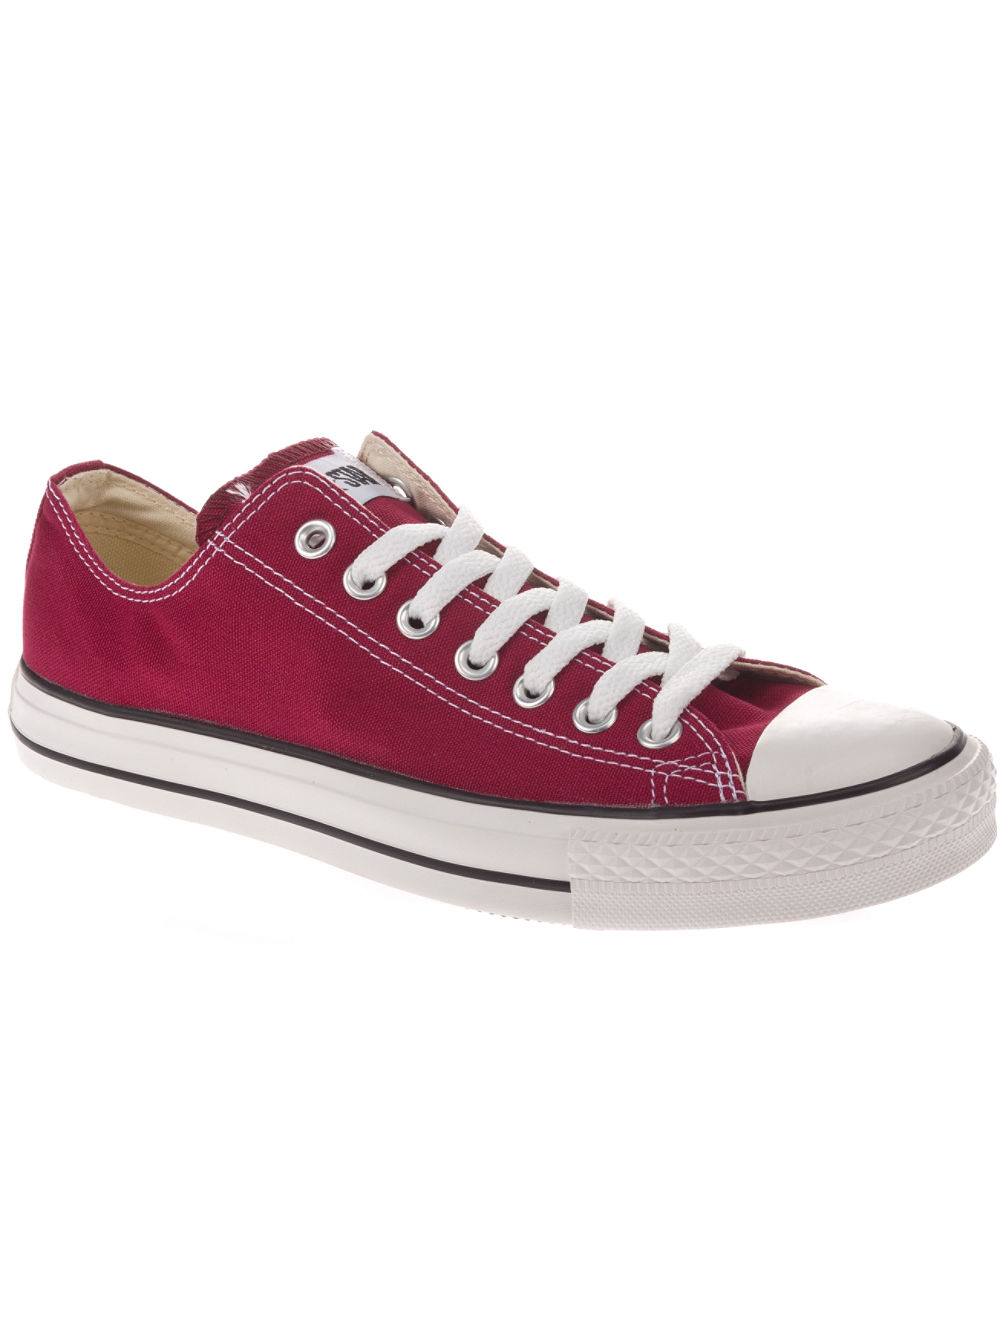 Converse Chuck Taylor All Star Ox Sneakers - converse - blue-tomato.com